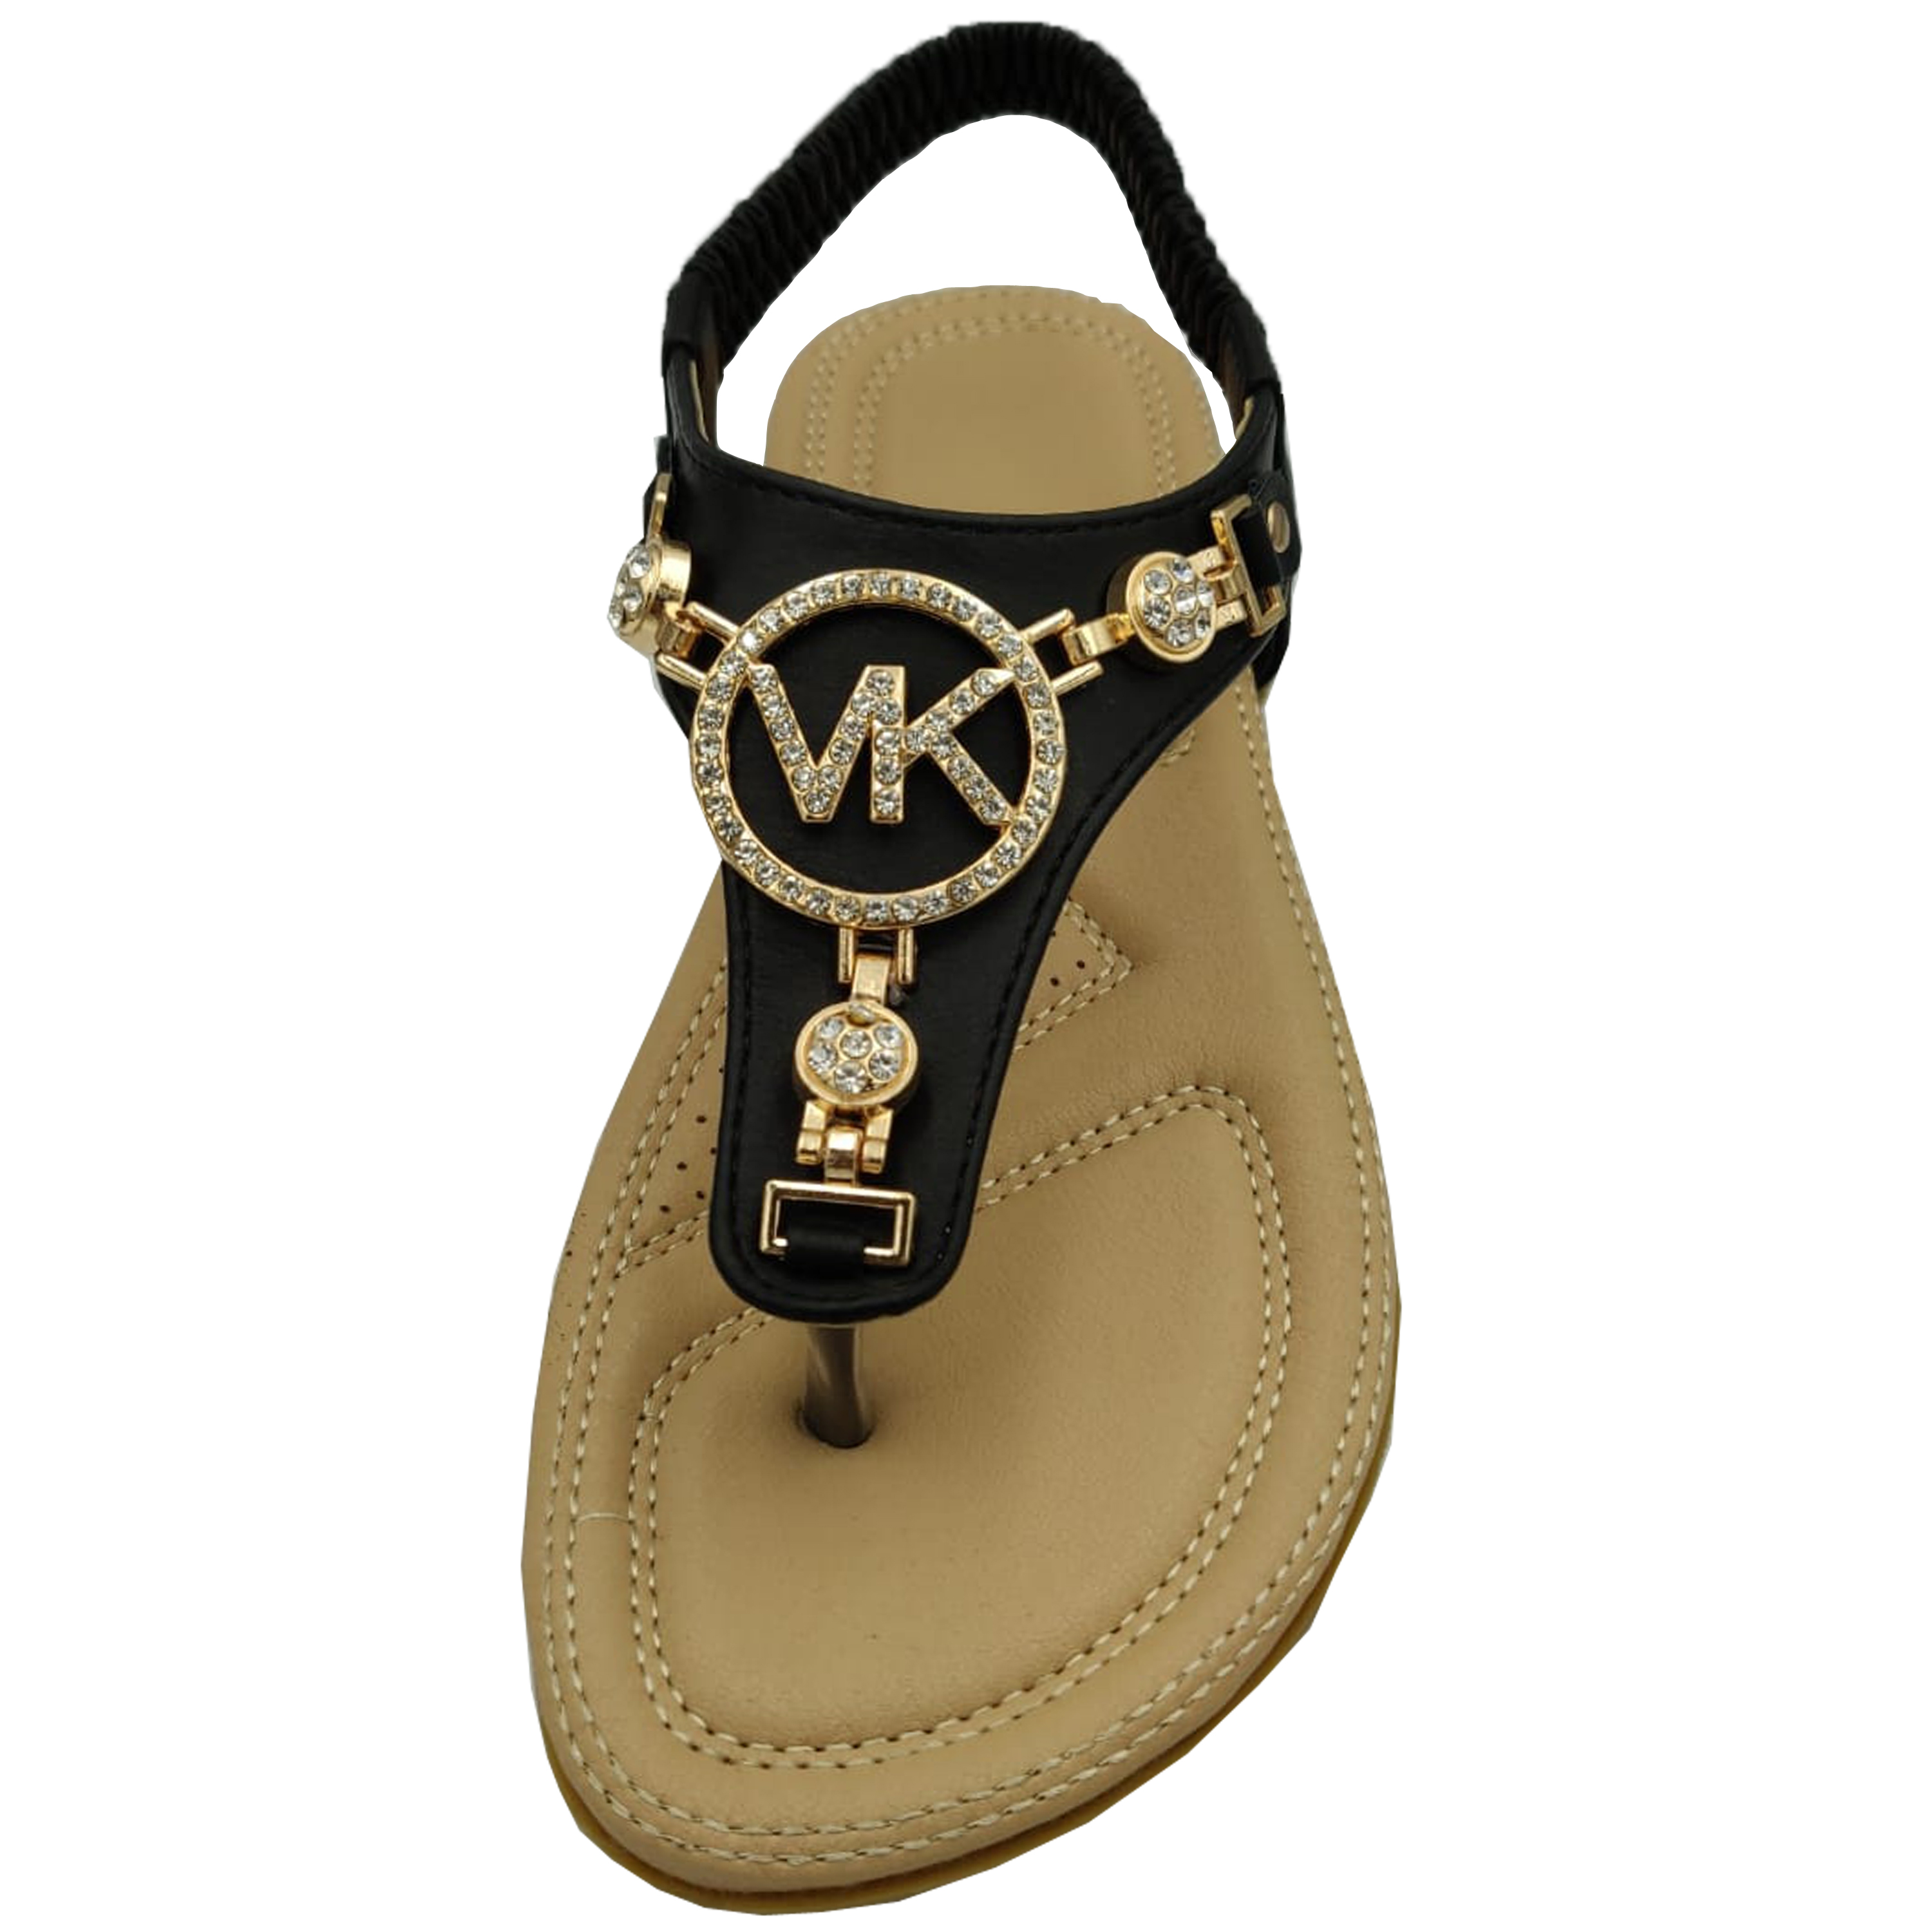 Ladies-Flat-Sandals-Womens-Diamante-Sling-Back-Toe-Post-Shoes-Summer-Fashion-New thumbnail 3